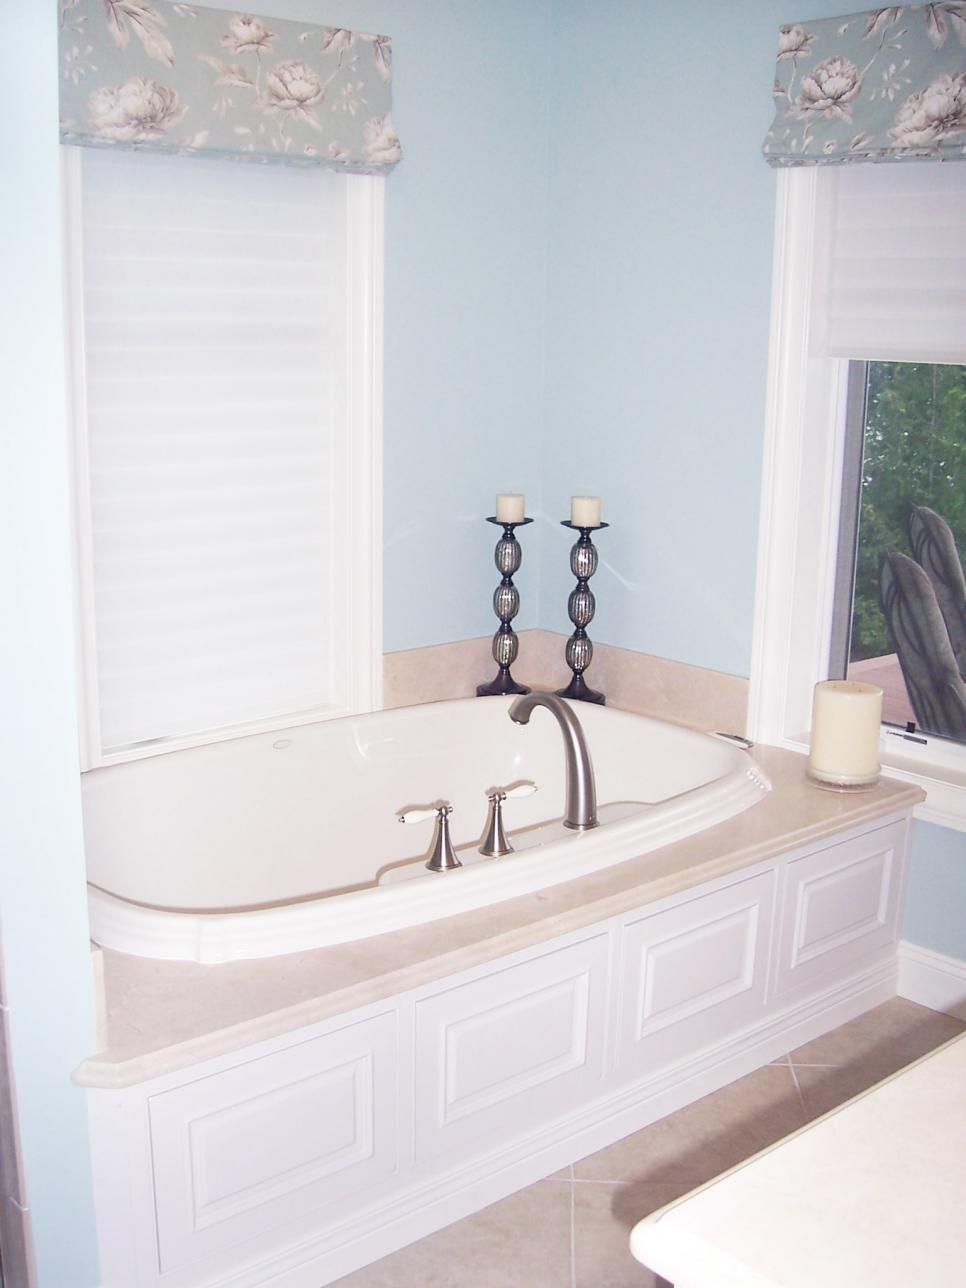 Master bedroom with jacuzzi tub  A marble deck and builtin wood base with decorative molding turn